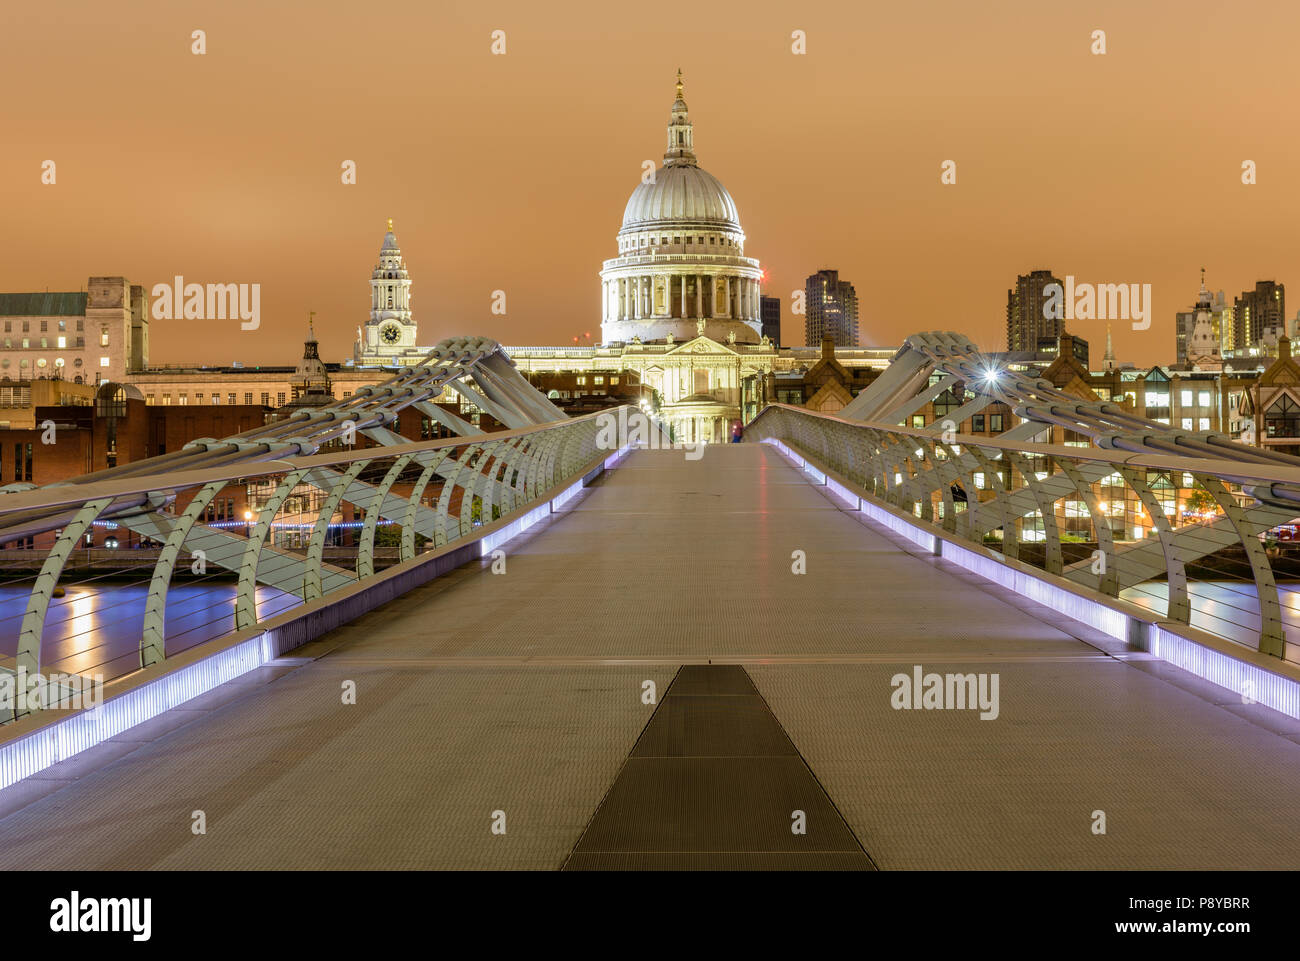 Head on landscape view of St Pauls Cathedral at night from a central position on the London Millennium Footbridge - Stock Image